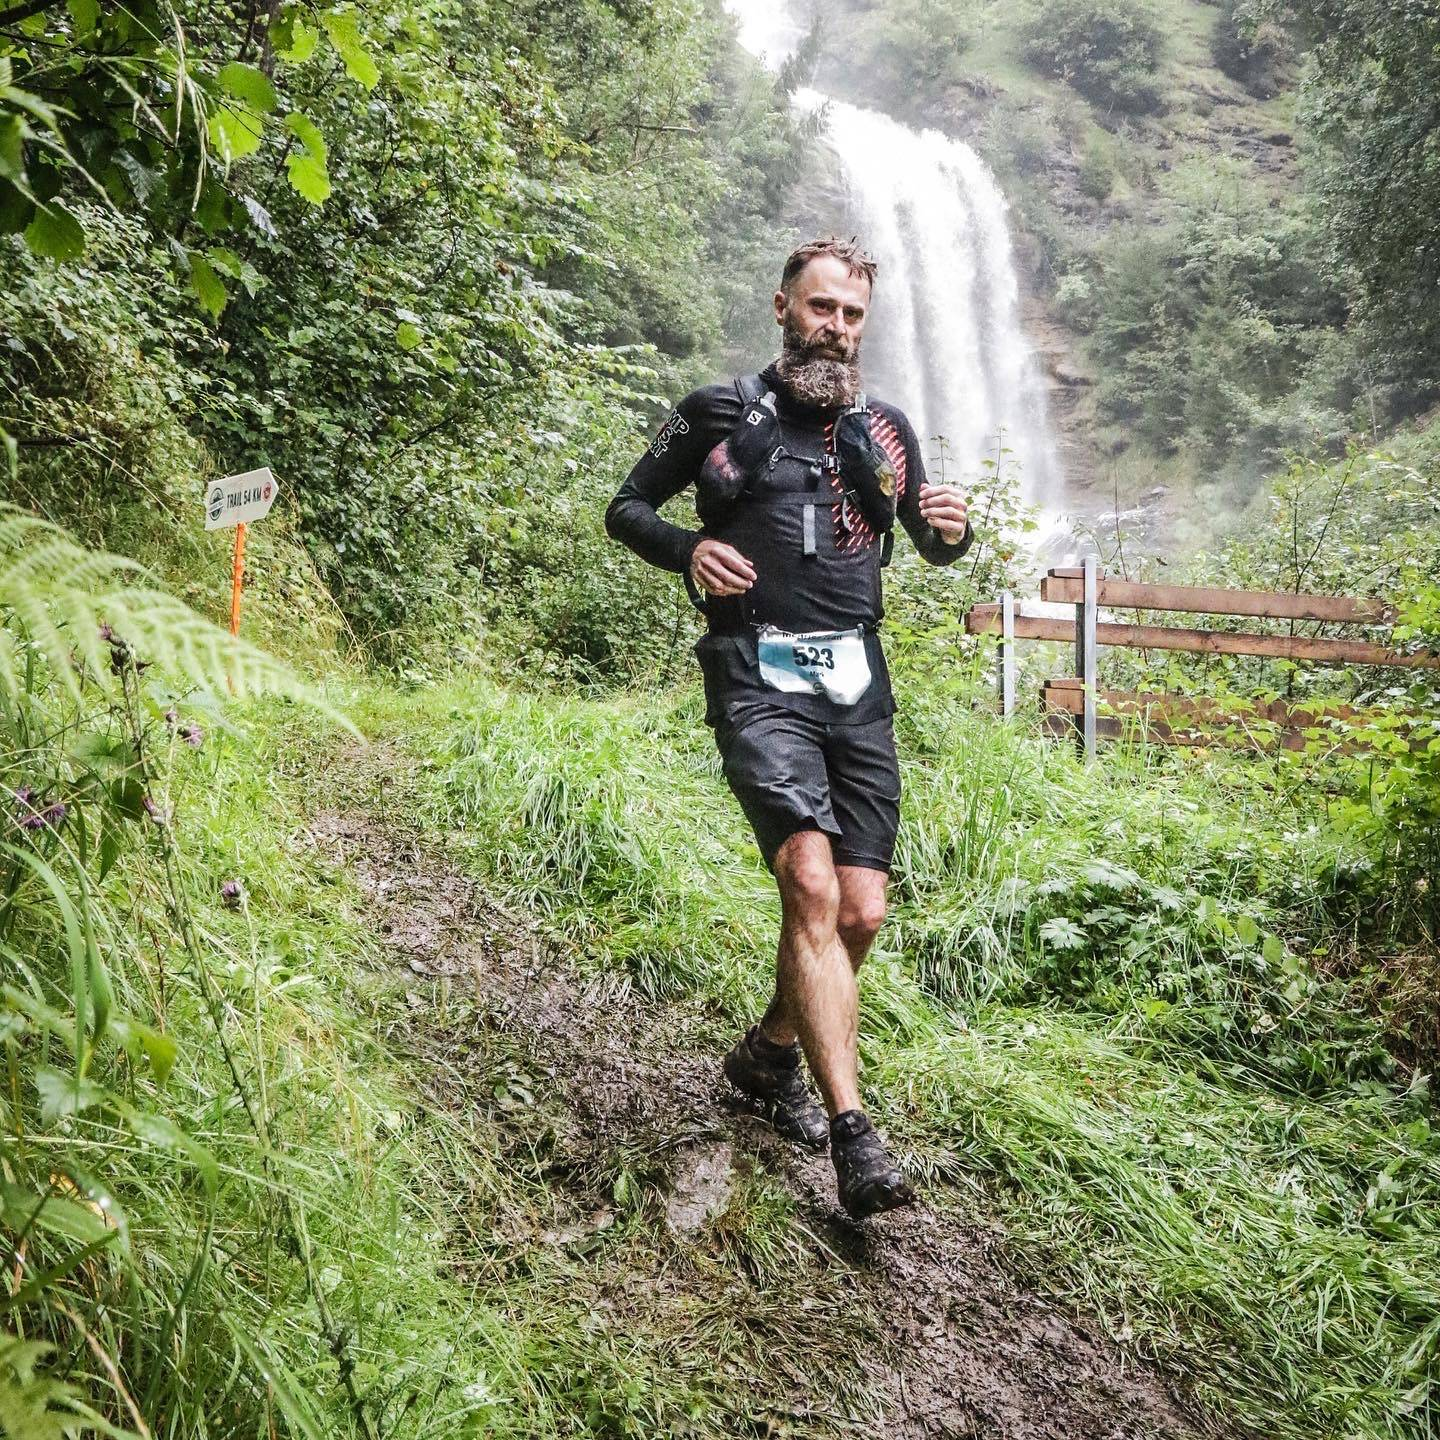 Me running in Klosters at the Madrisa T24 trail race